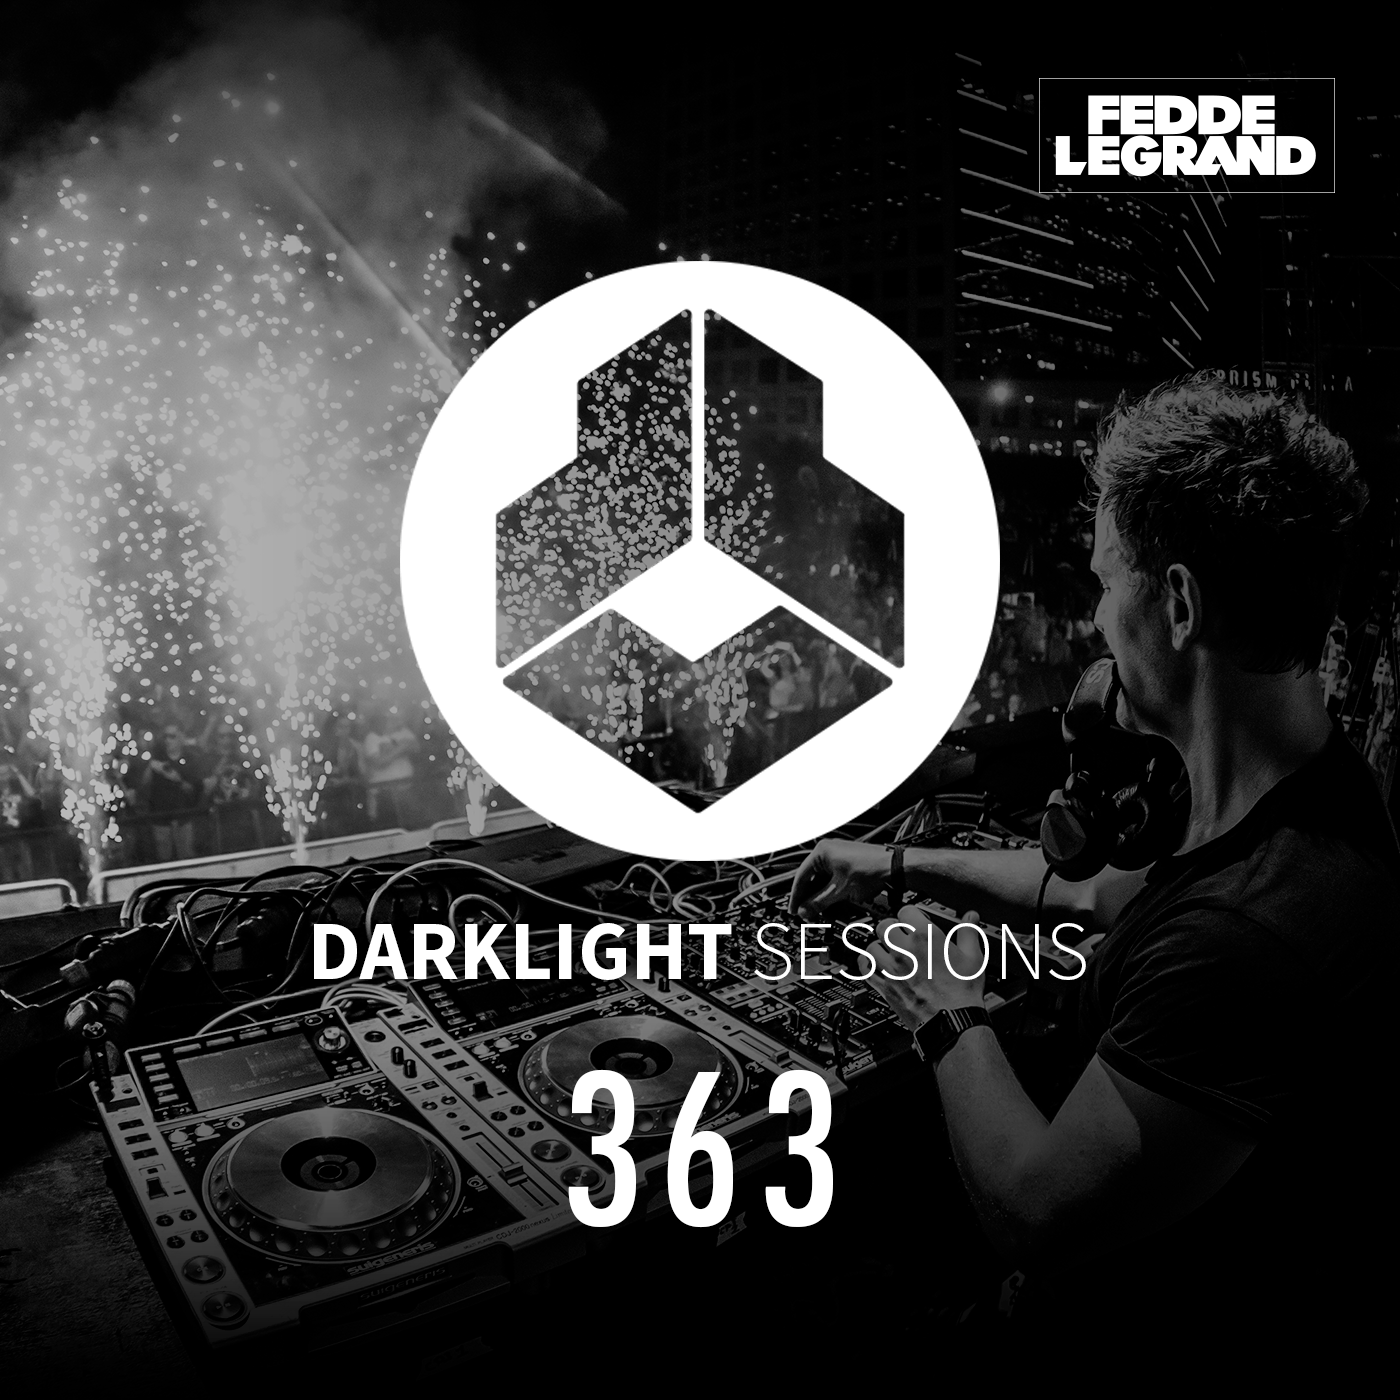 Darklight Sessions 363